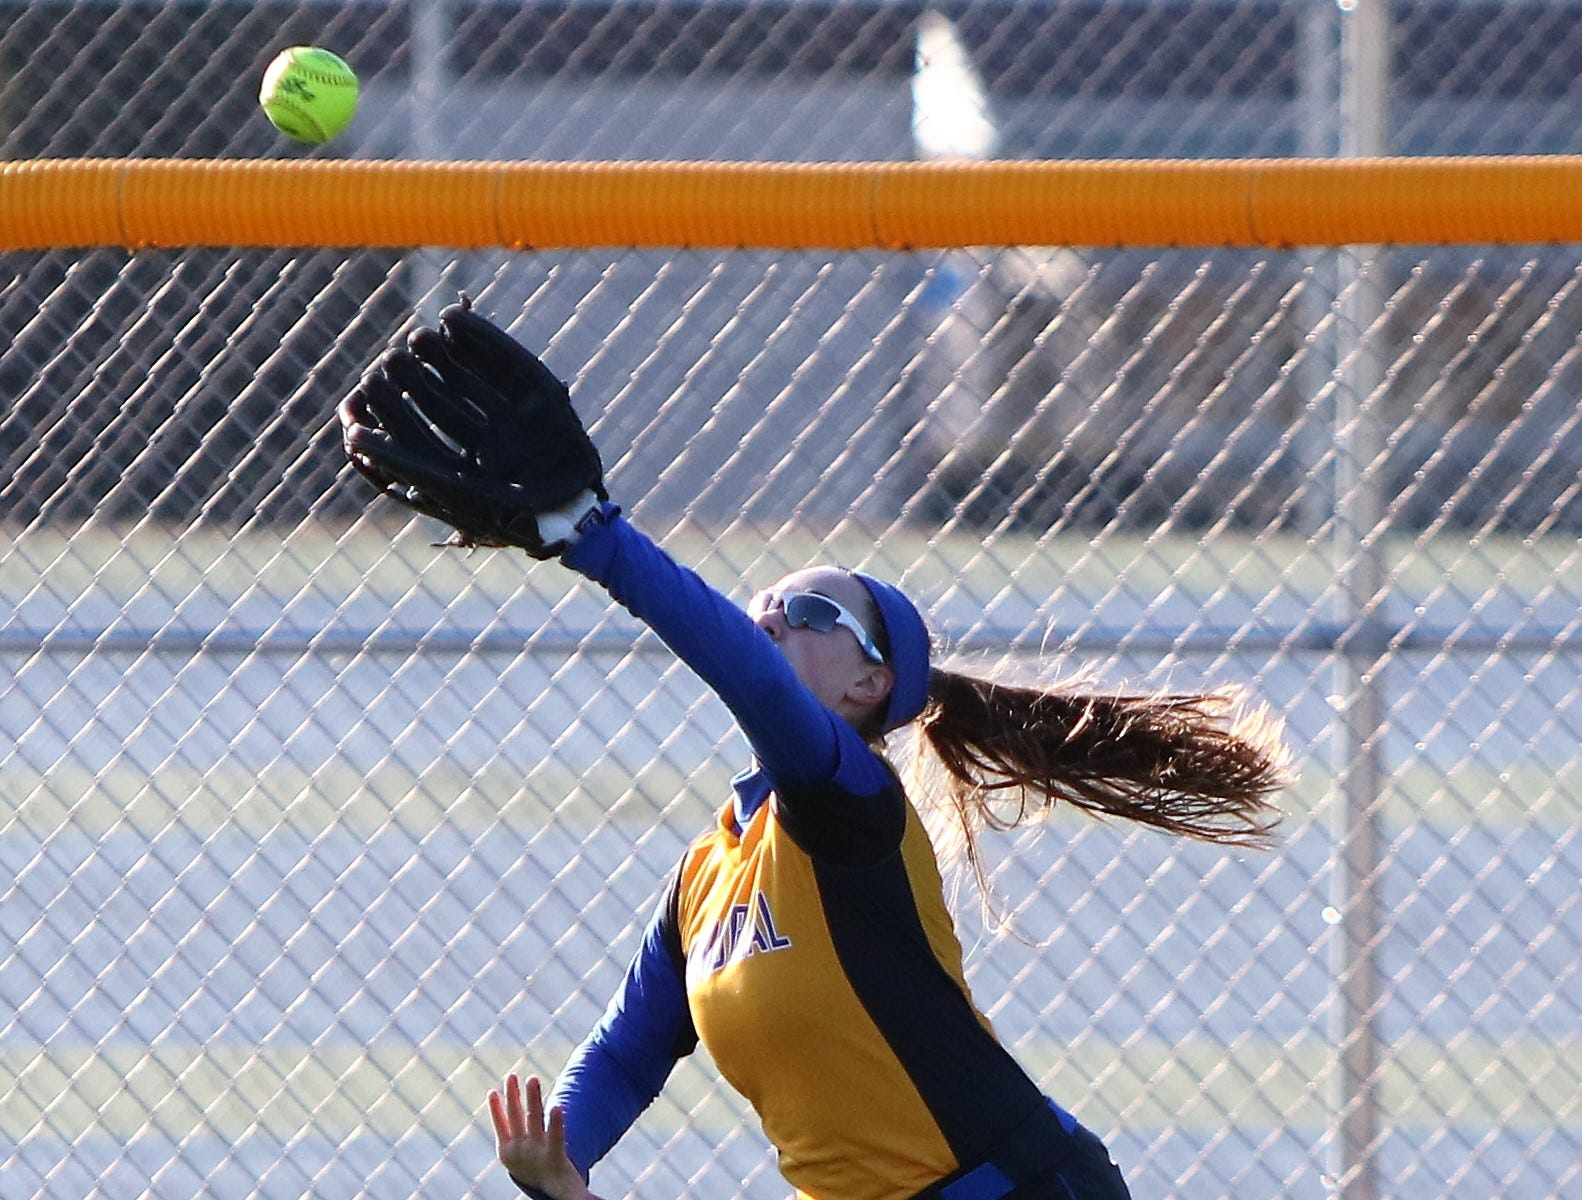 A Catholic Memorial outfielder makes a catch on a fly ball against Wauwatosa East on March 19, 2019.